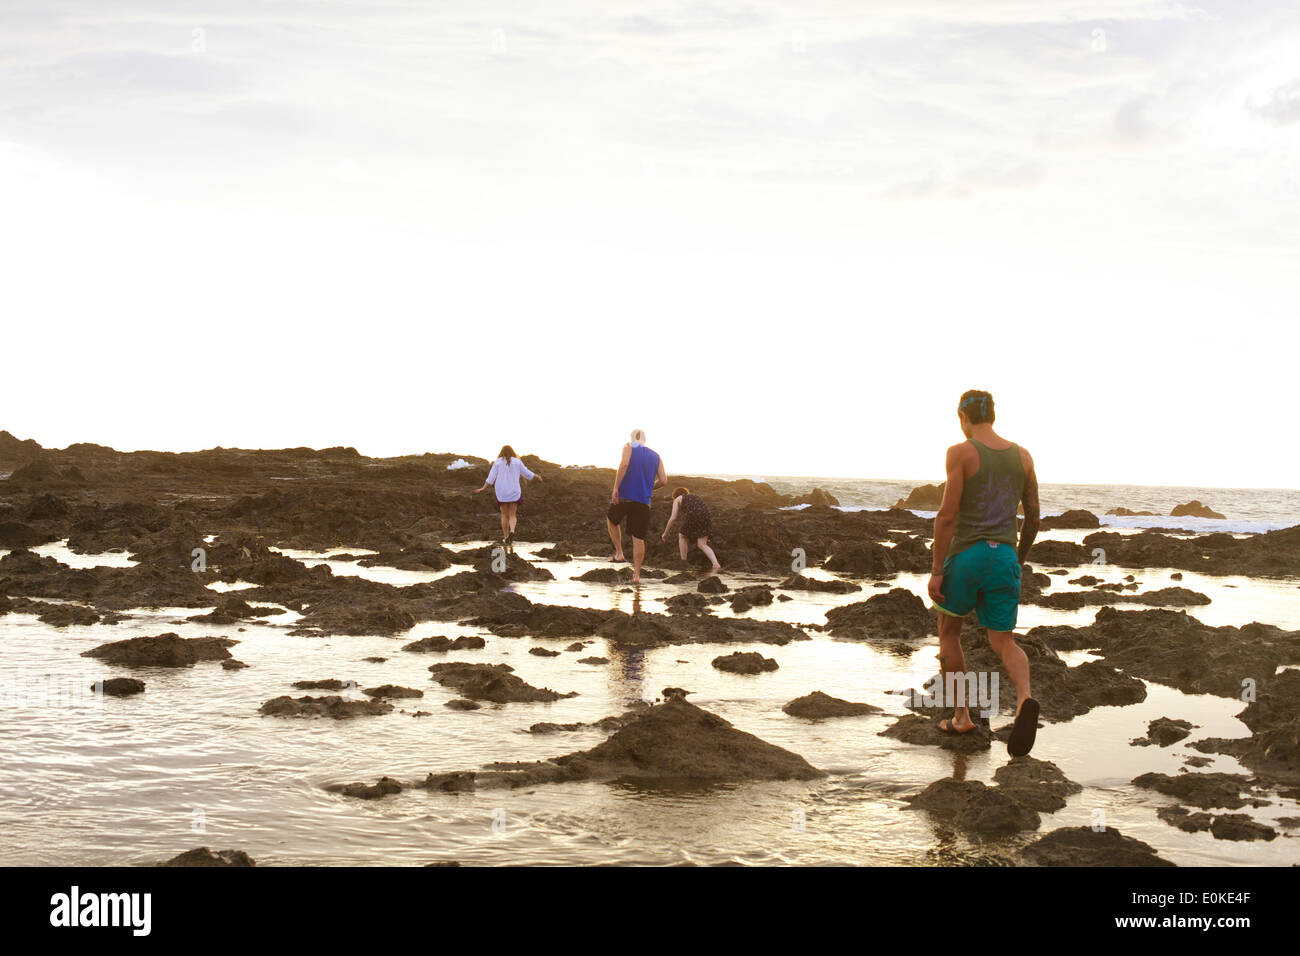 People explore Costa Rica's tropical tidal pools in the afternoon sunlight. Stock Photo